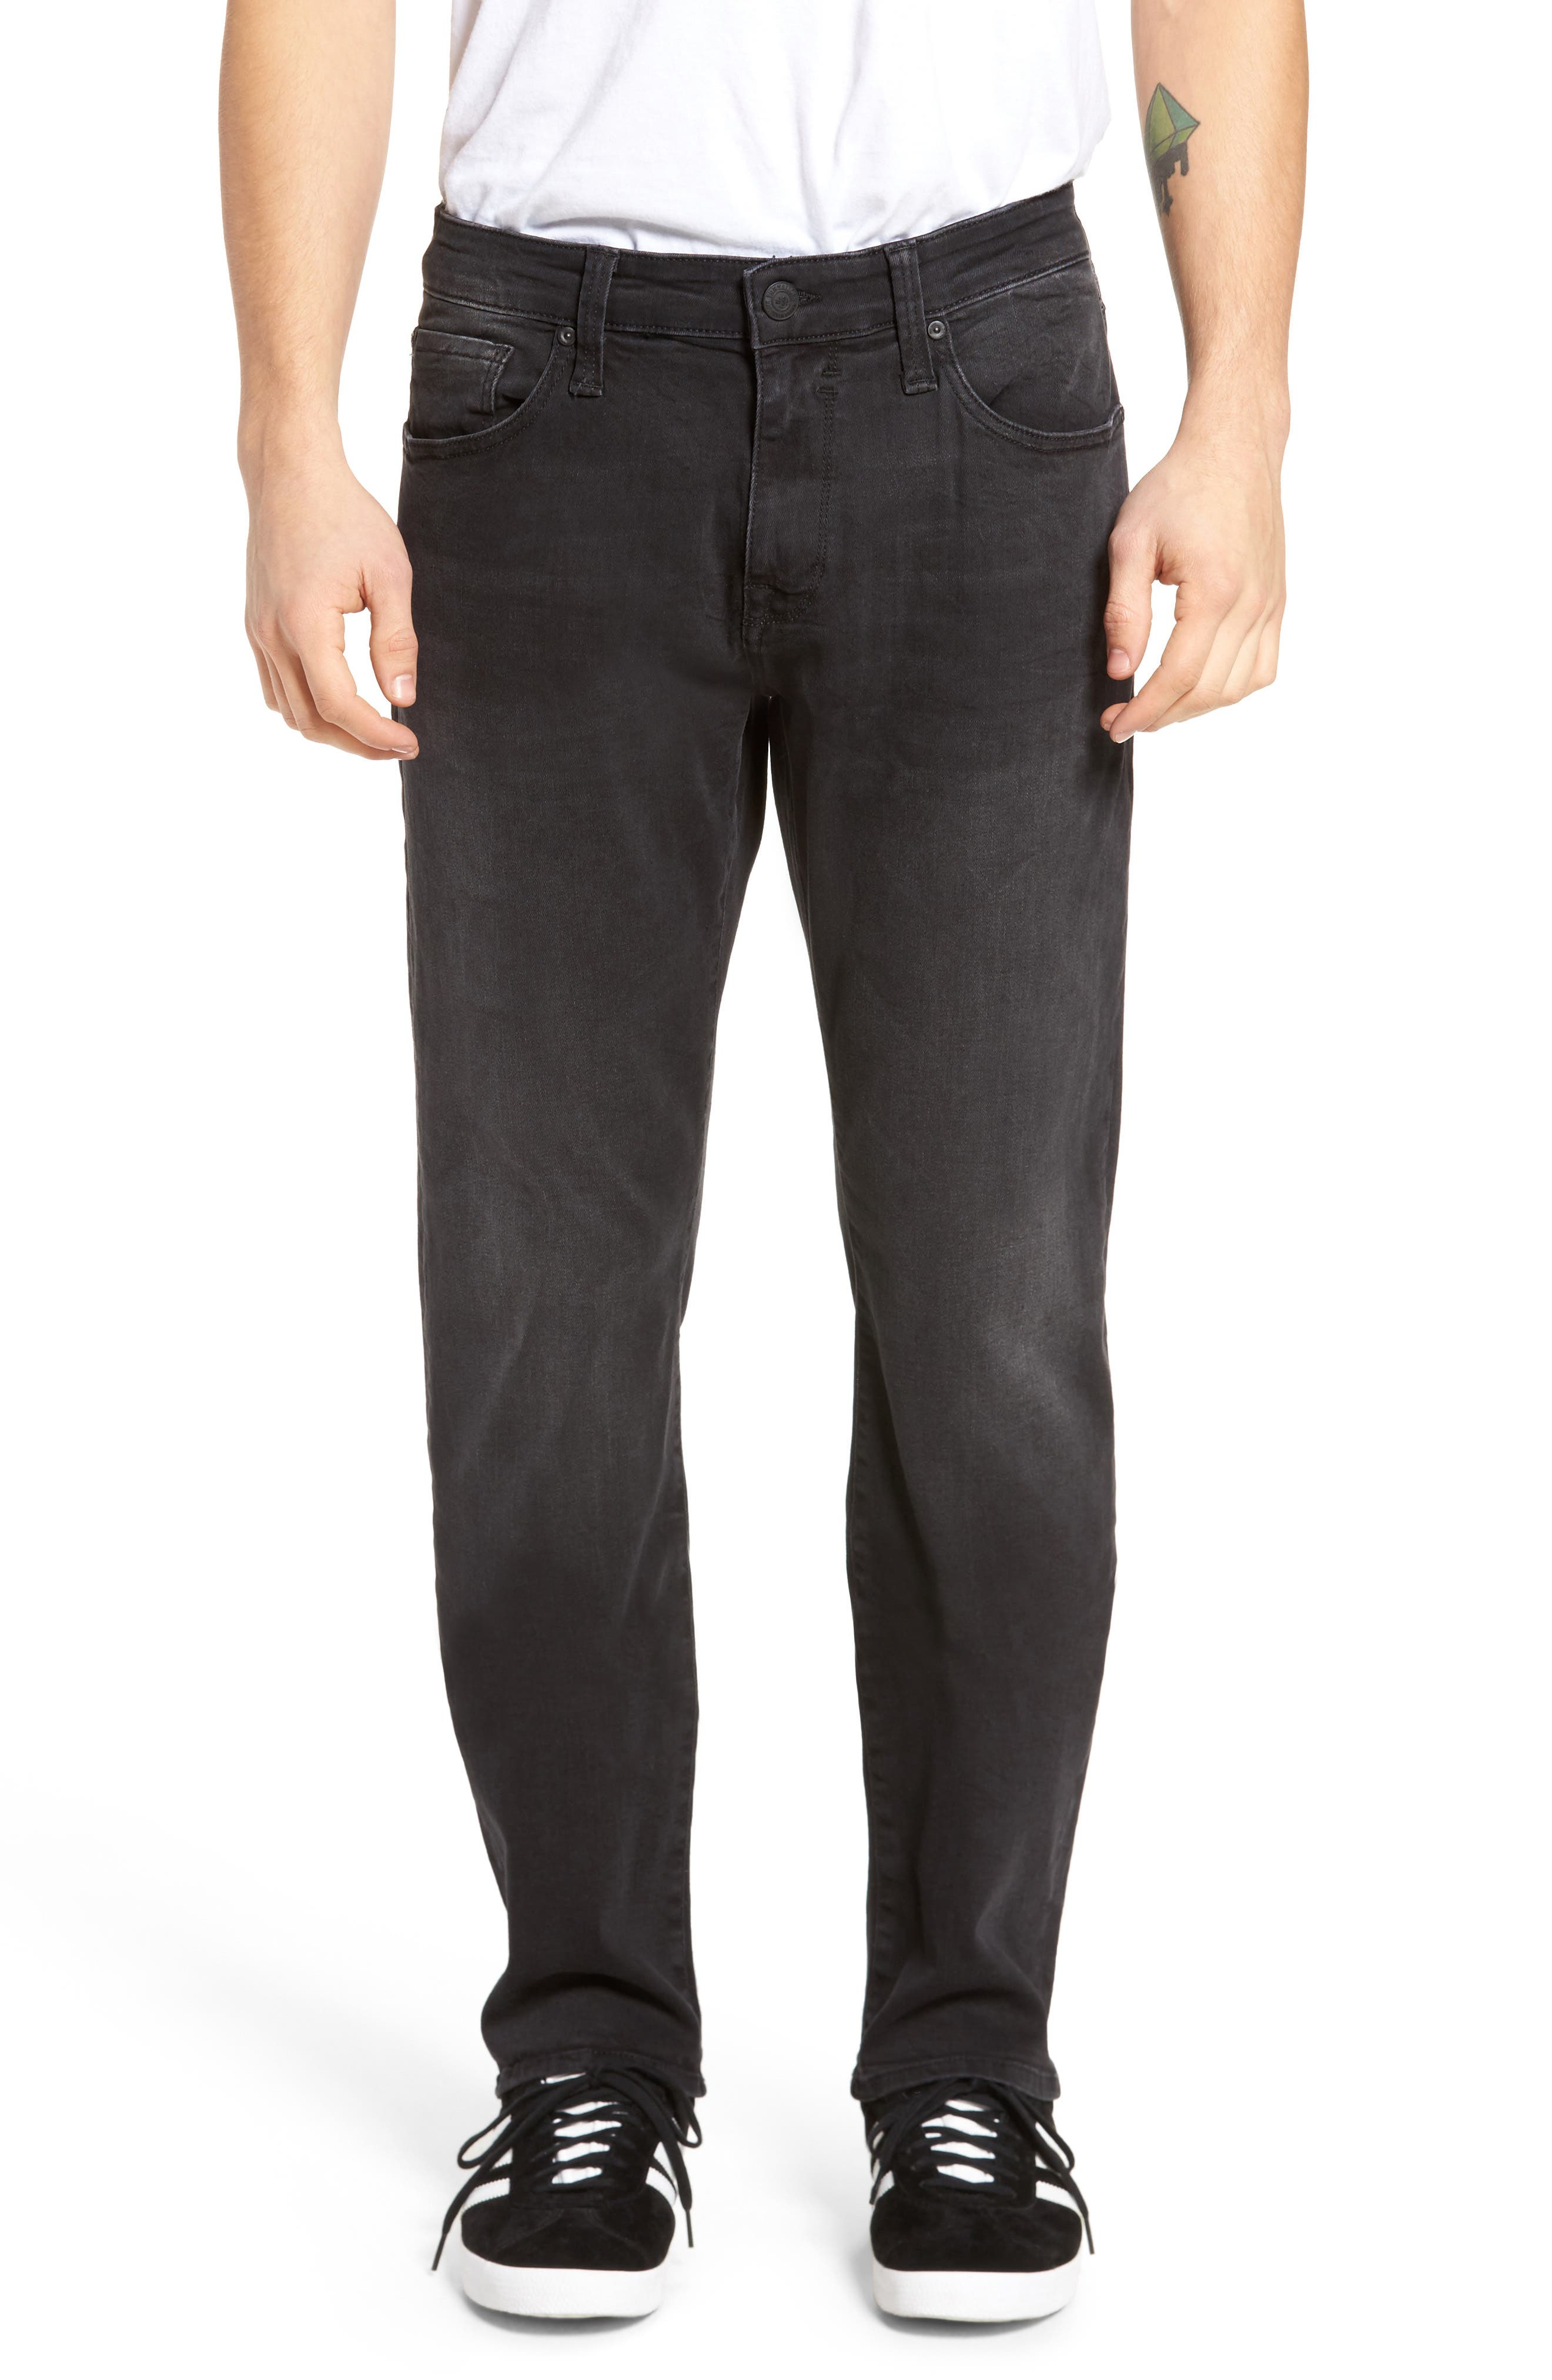 Zach Straight Fit Jeans,                         Main,                         color, 050